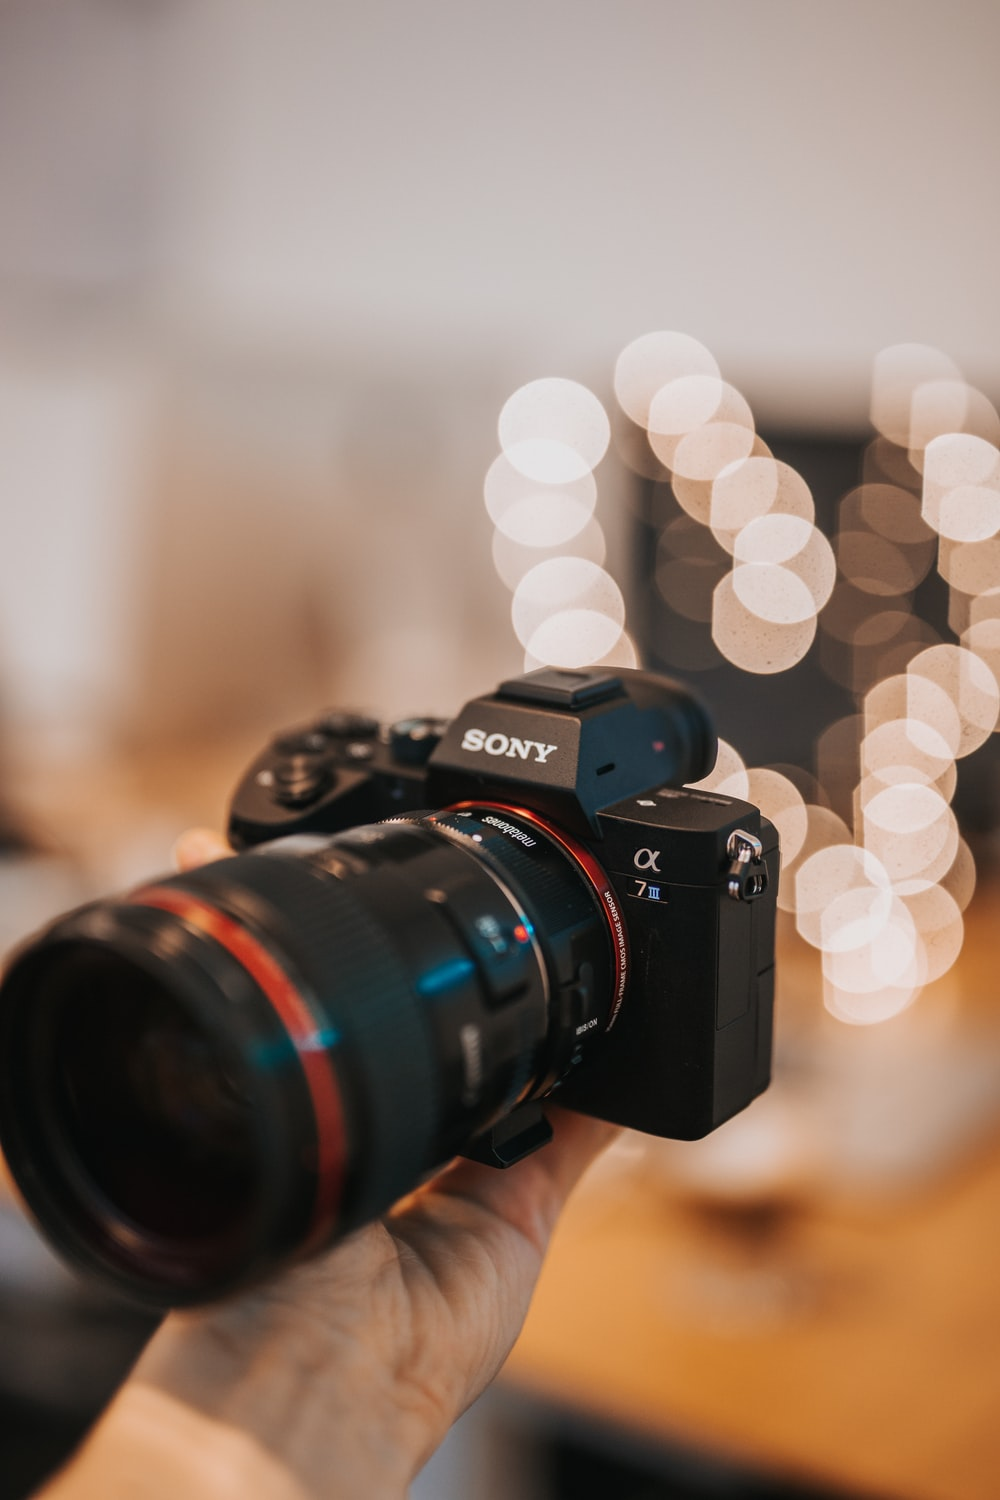 Sony Alpha A7iii Pictures Download Free Images On Unsplash